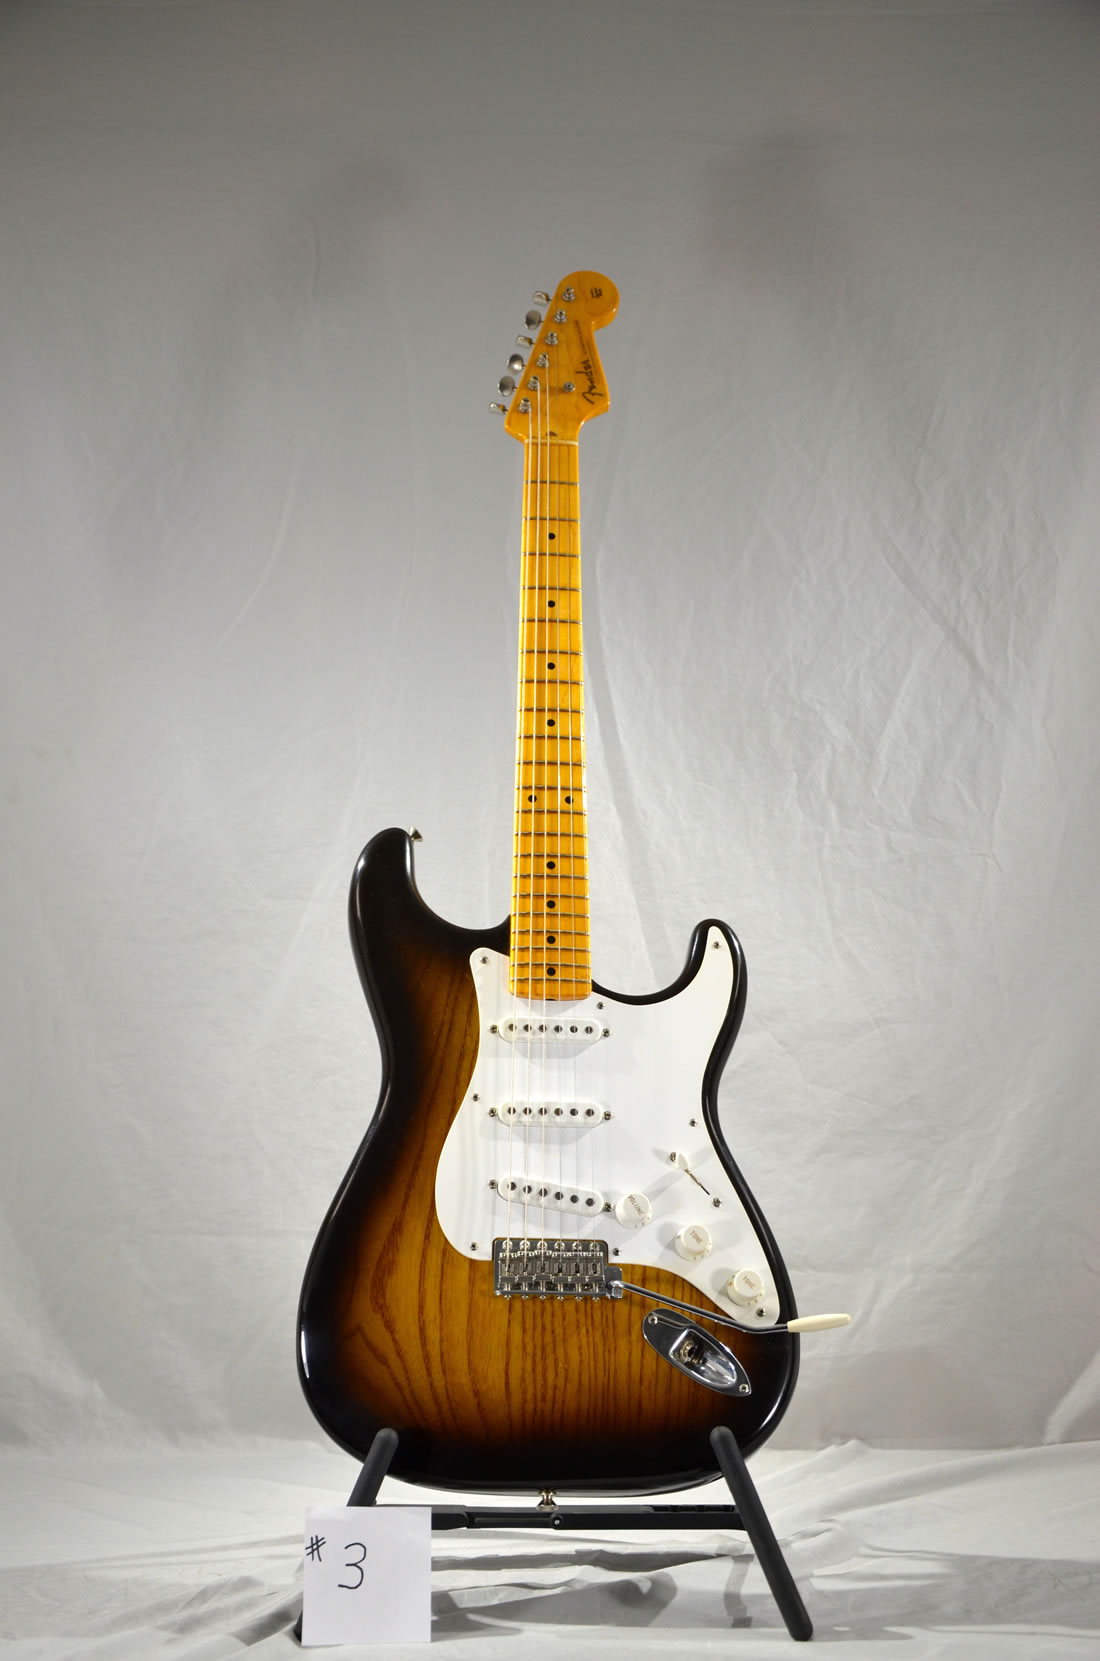 1954 Fender Stratocaster Limited Edition Reissue #3